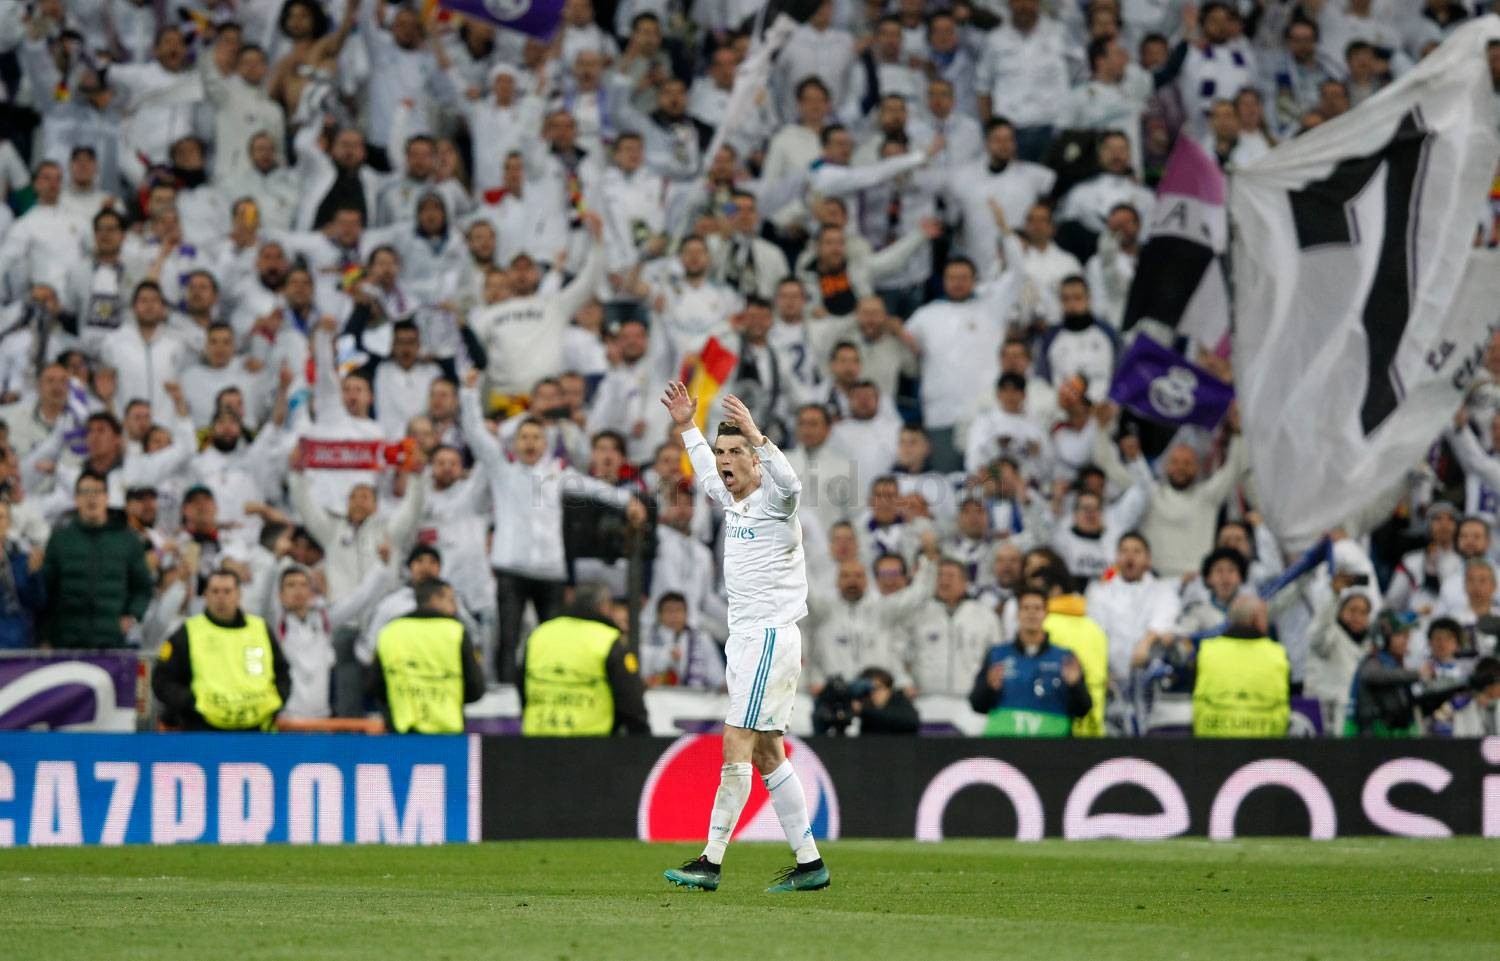 Real Madrid - Real Madrid - Juventus - 11-04-2018